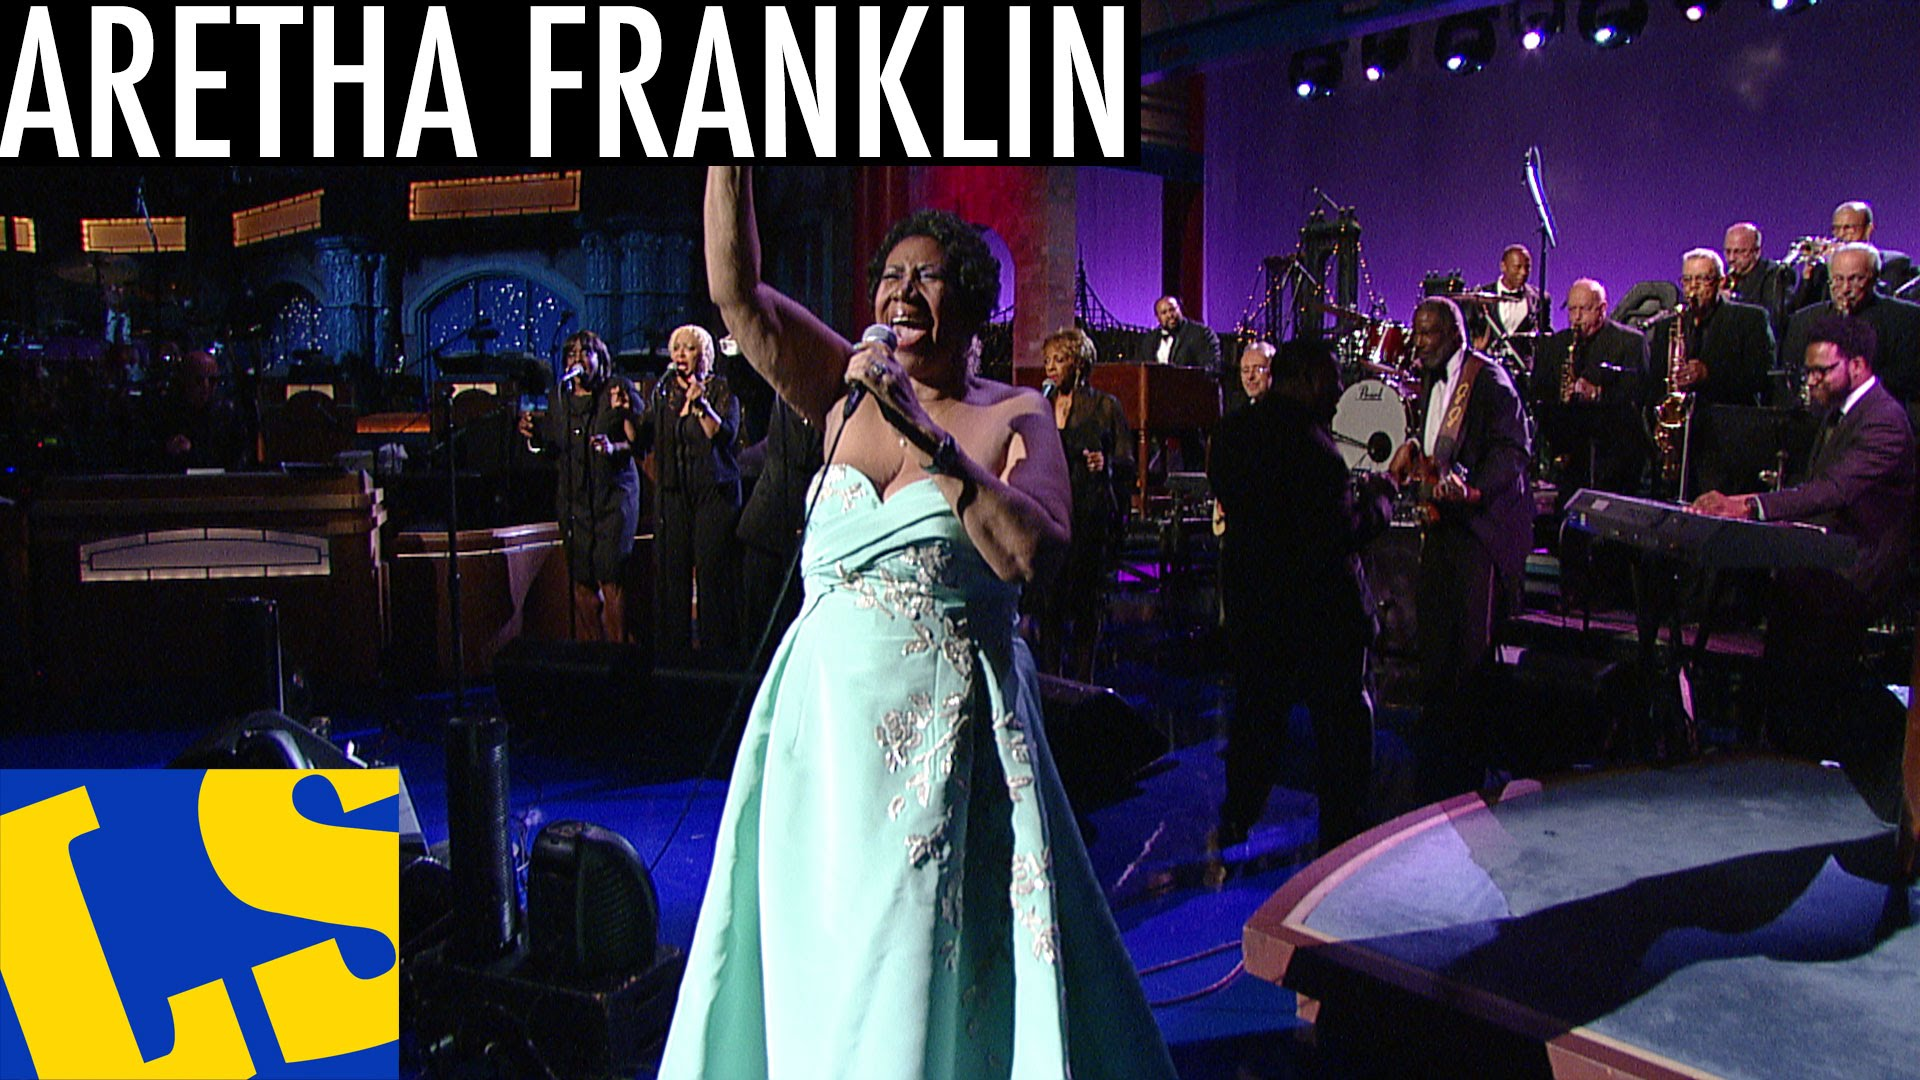 Detroit legend Aretha Franklin to sing for President at White House concert